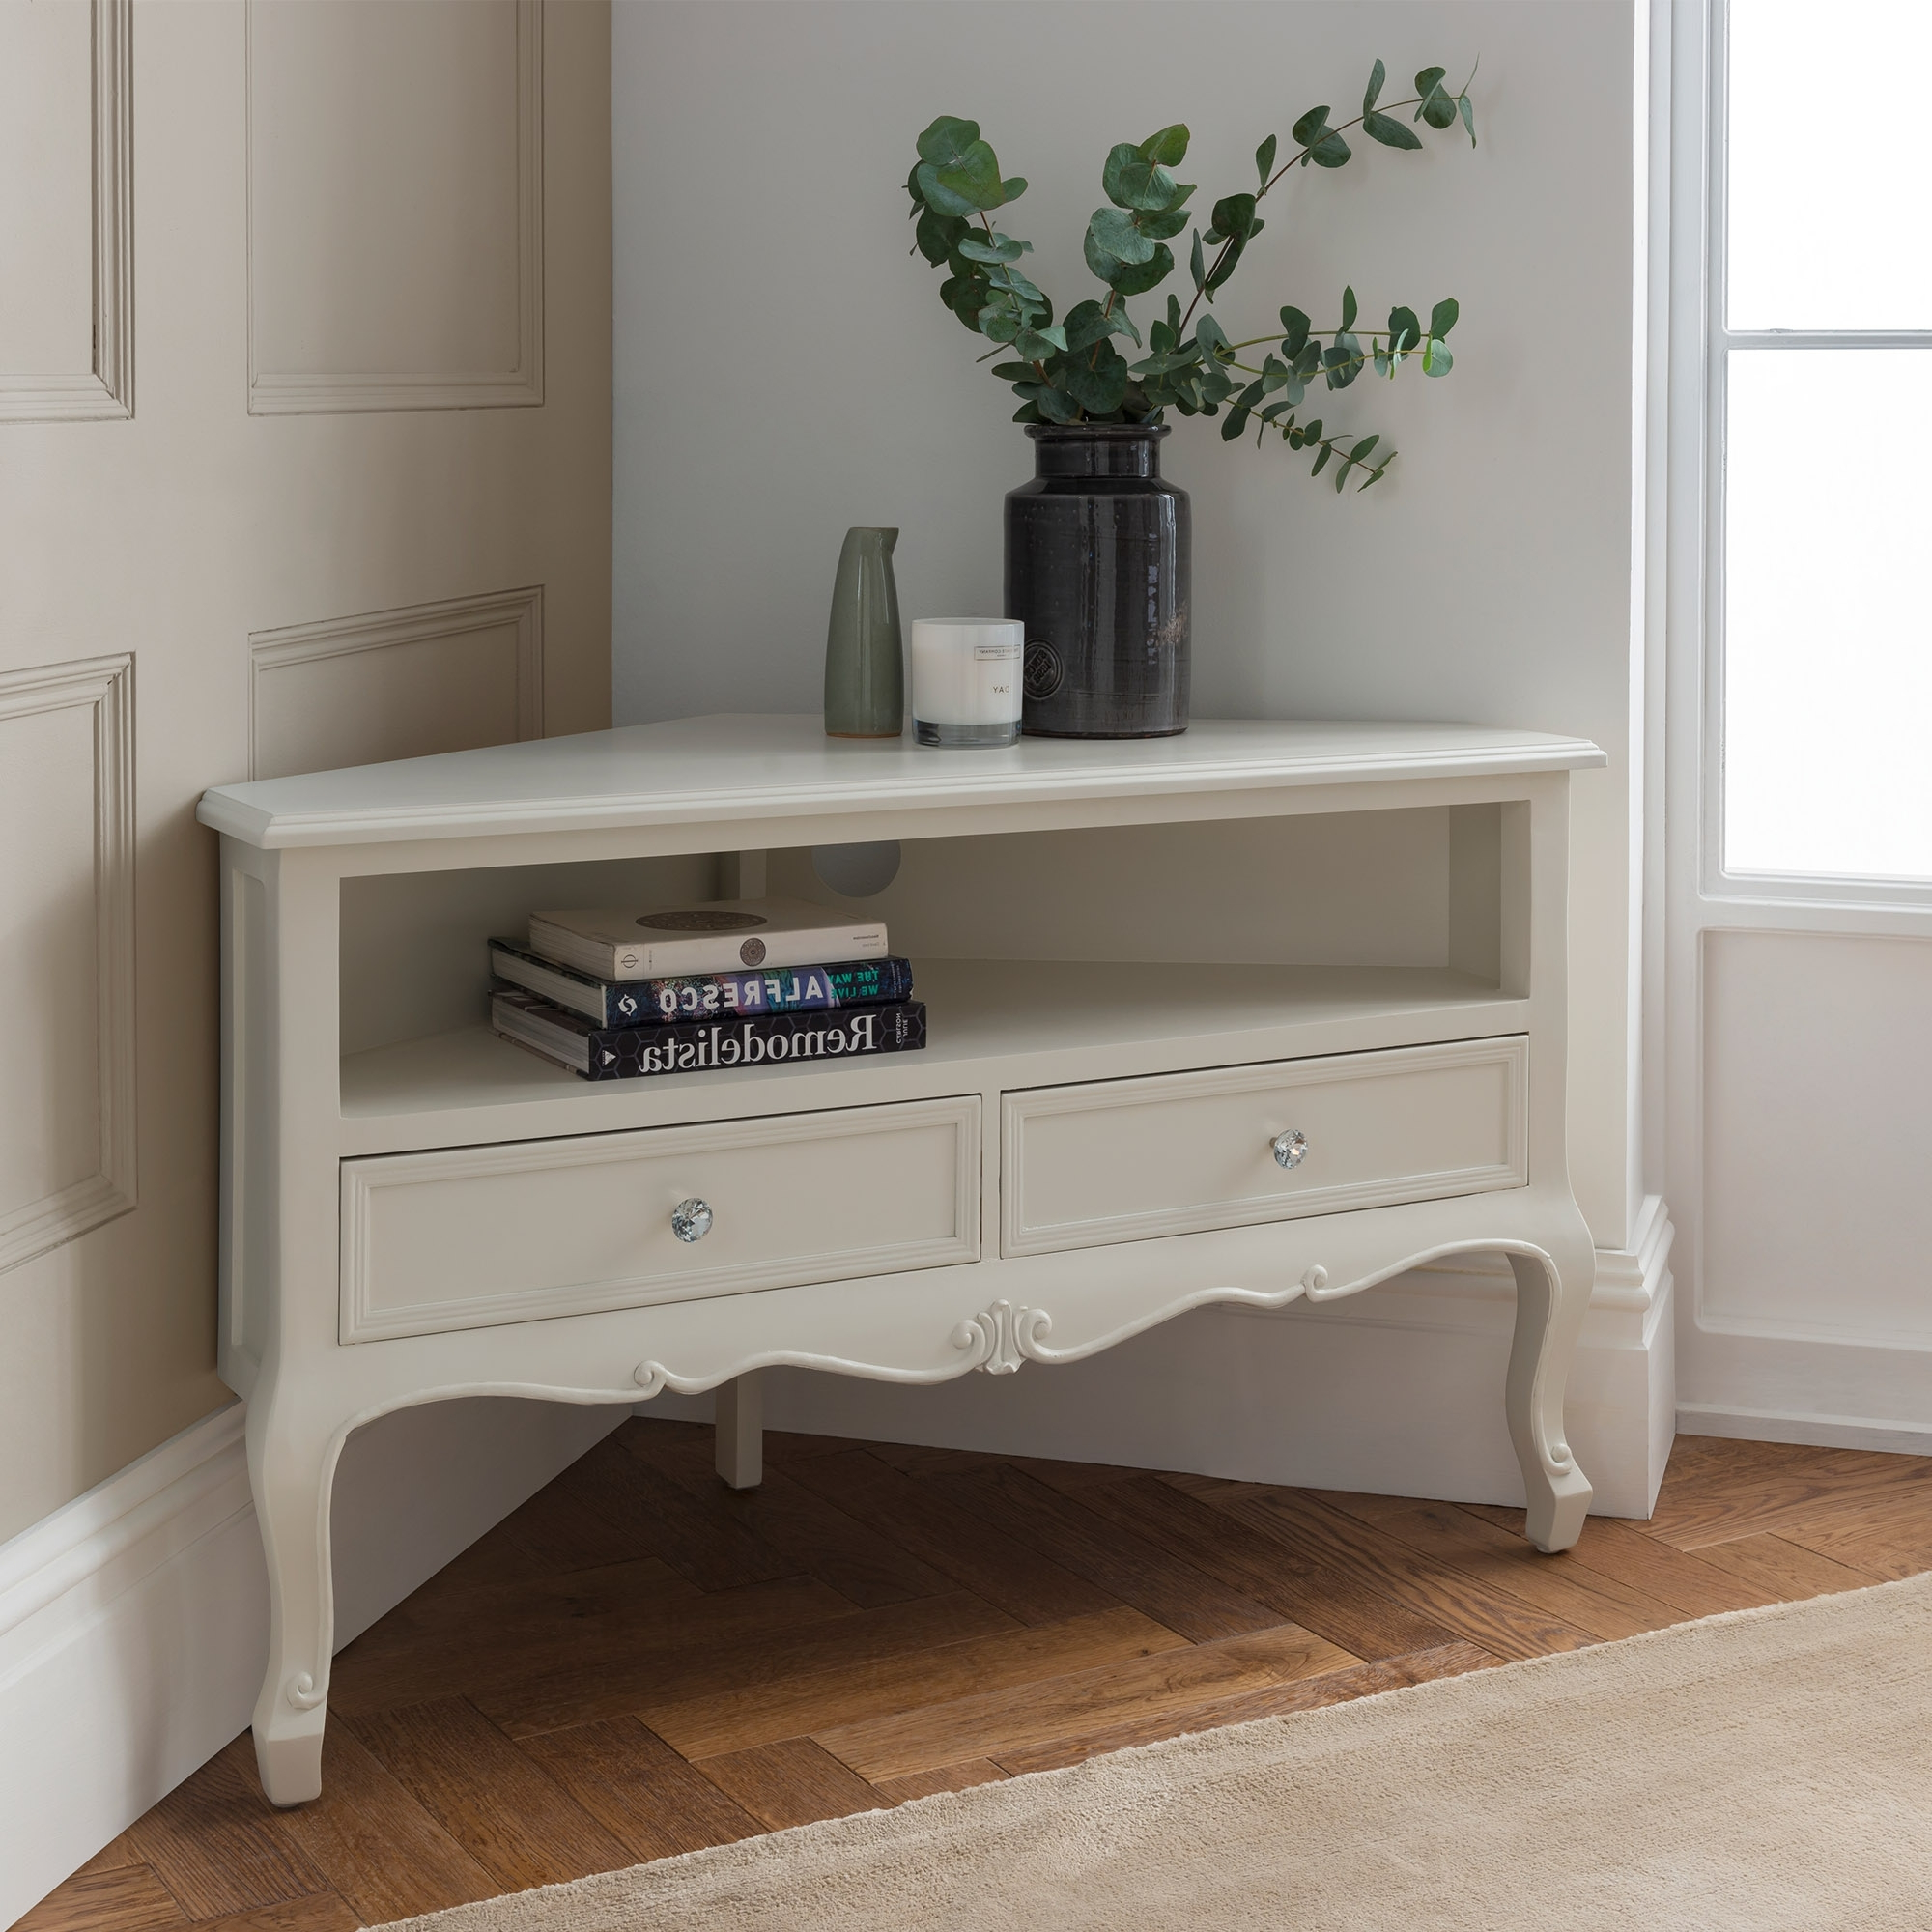 Most Recently Released Cream Corner Tv Stands Within Antique Corner Tv Stand Or White Stands With Cream Plus Together (View 13 of 20)